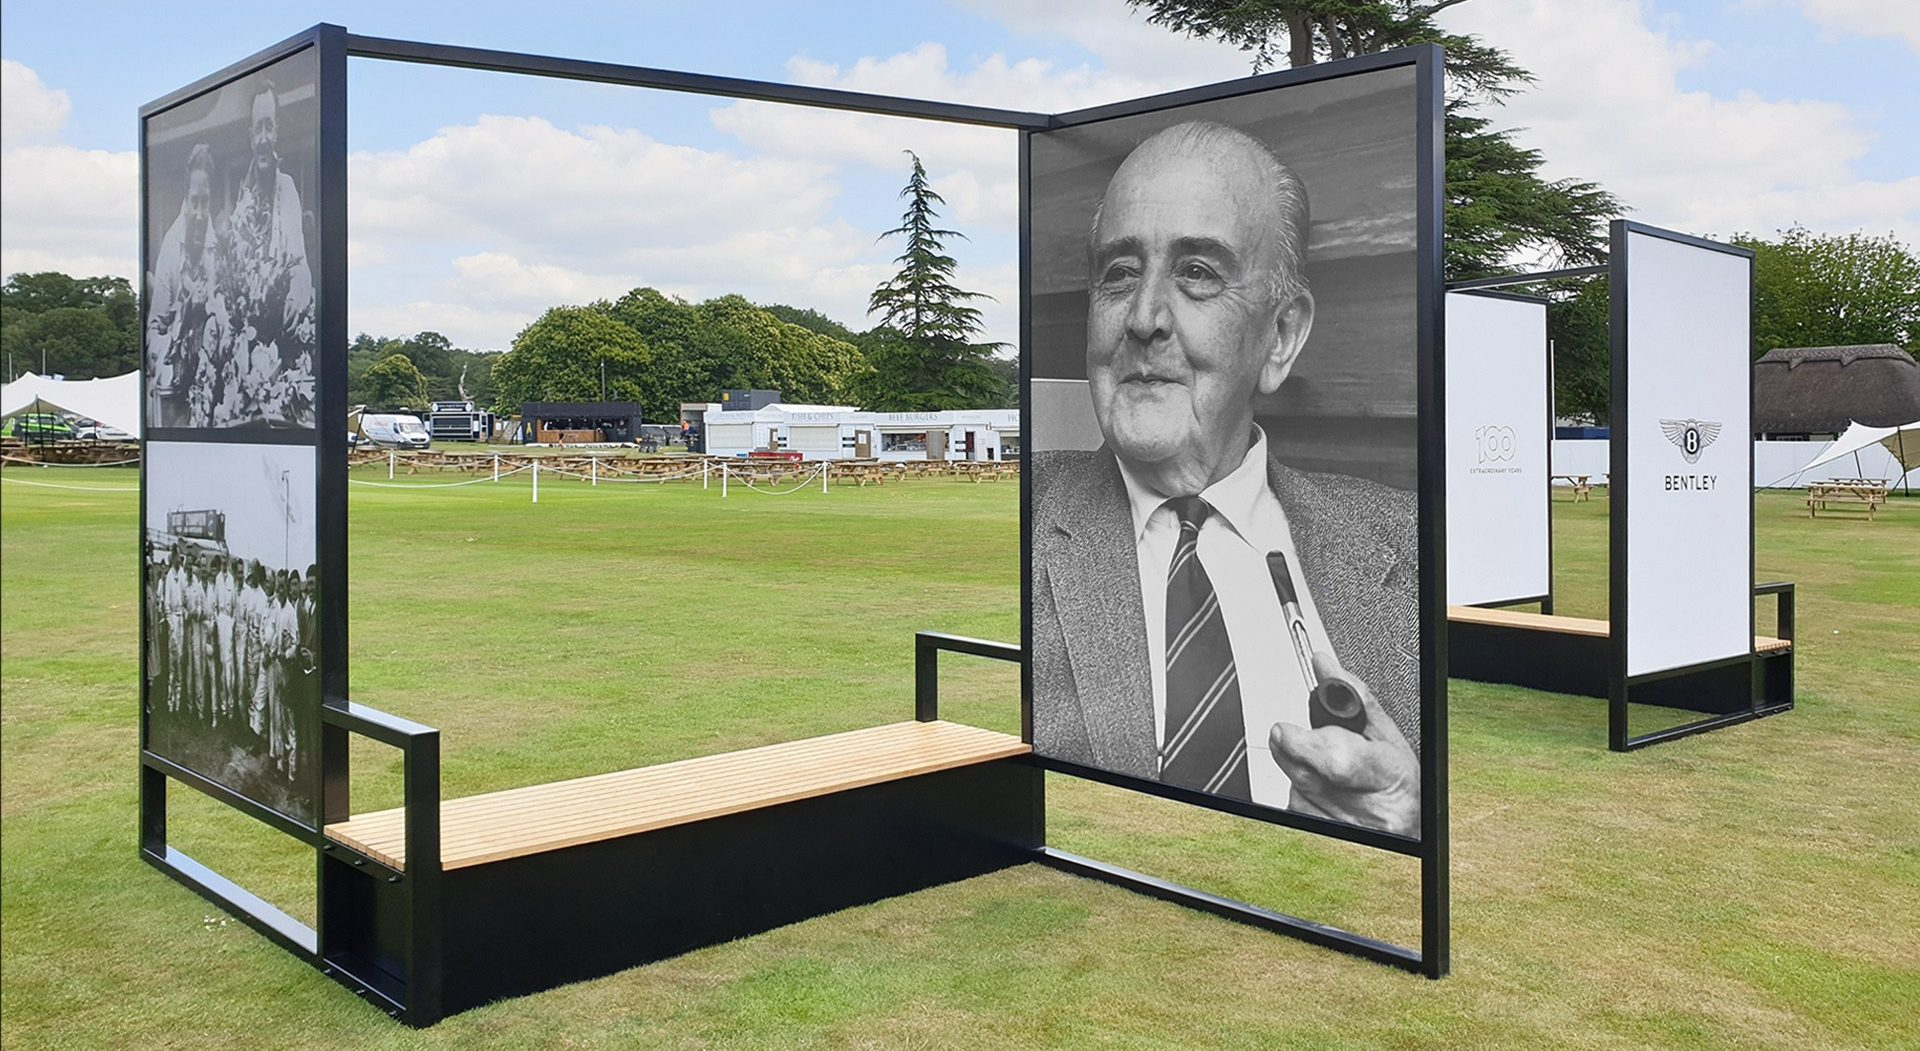 large format photographs displayed in metal frames with integrated seating, situated in grassy fields in Goodwood Festival of Speed